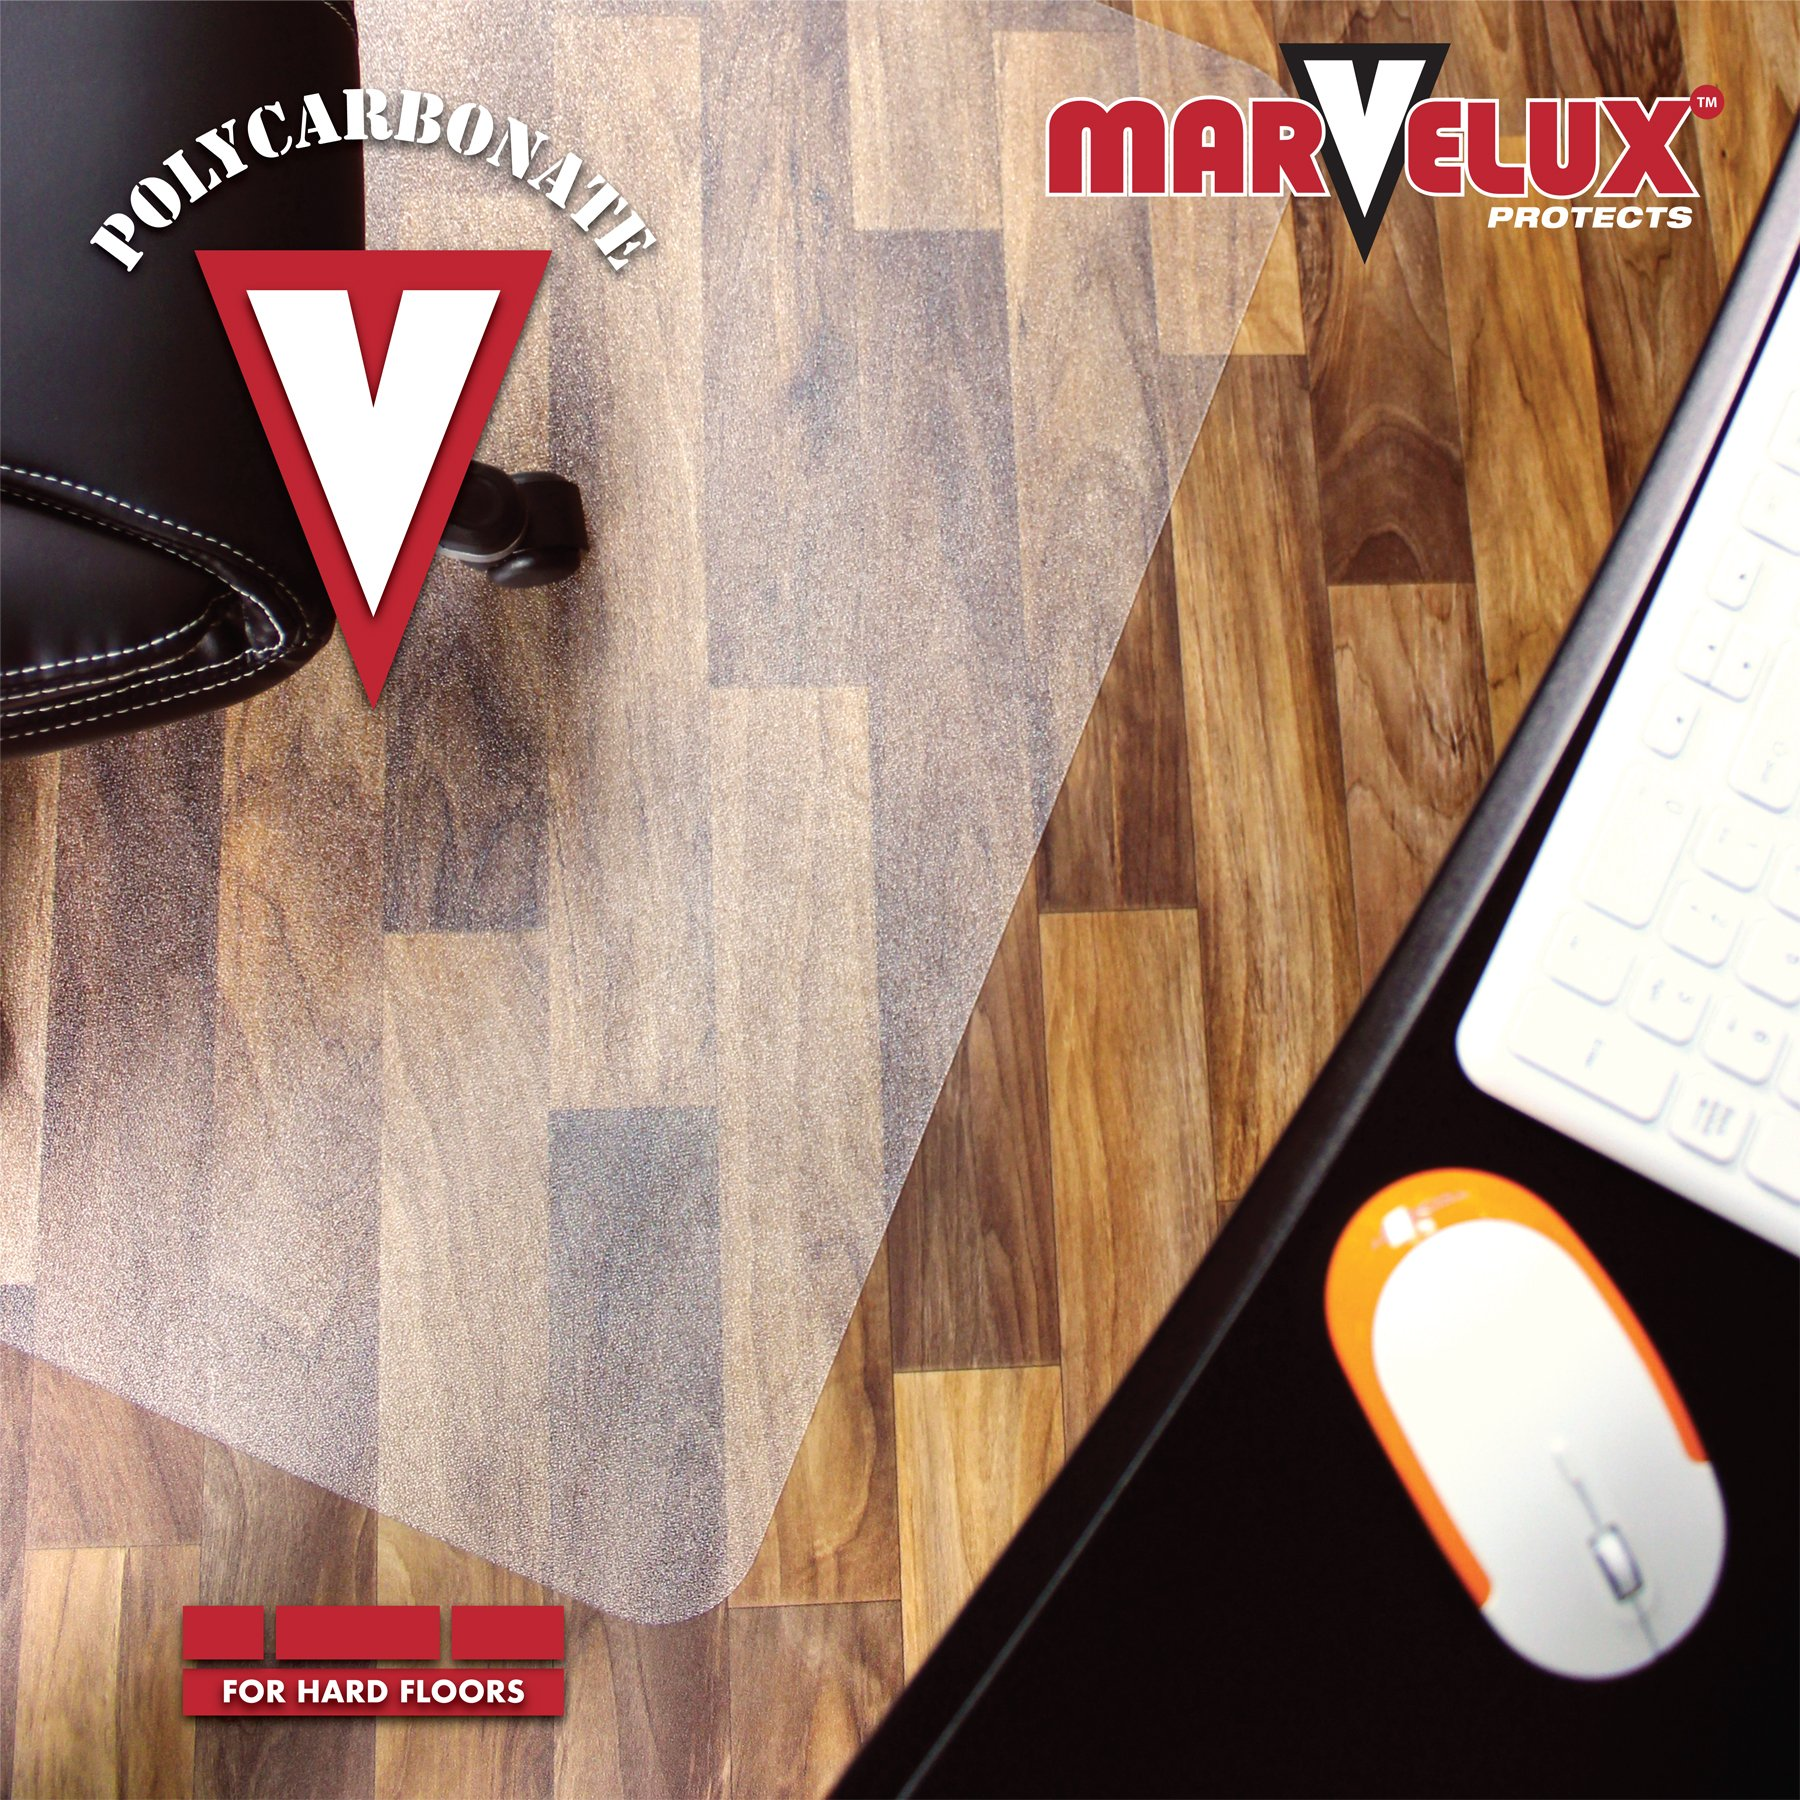 Marvelux 48'' x 60'' Heavy Duty Polycarbonate (PC) Rectangular Chair Mat for Hard Floors | Transparent Hardwood Floor Protector | Multiple Sizes by Marvelux (Image #4)